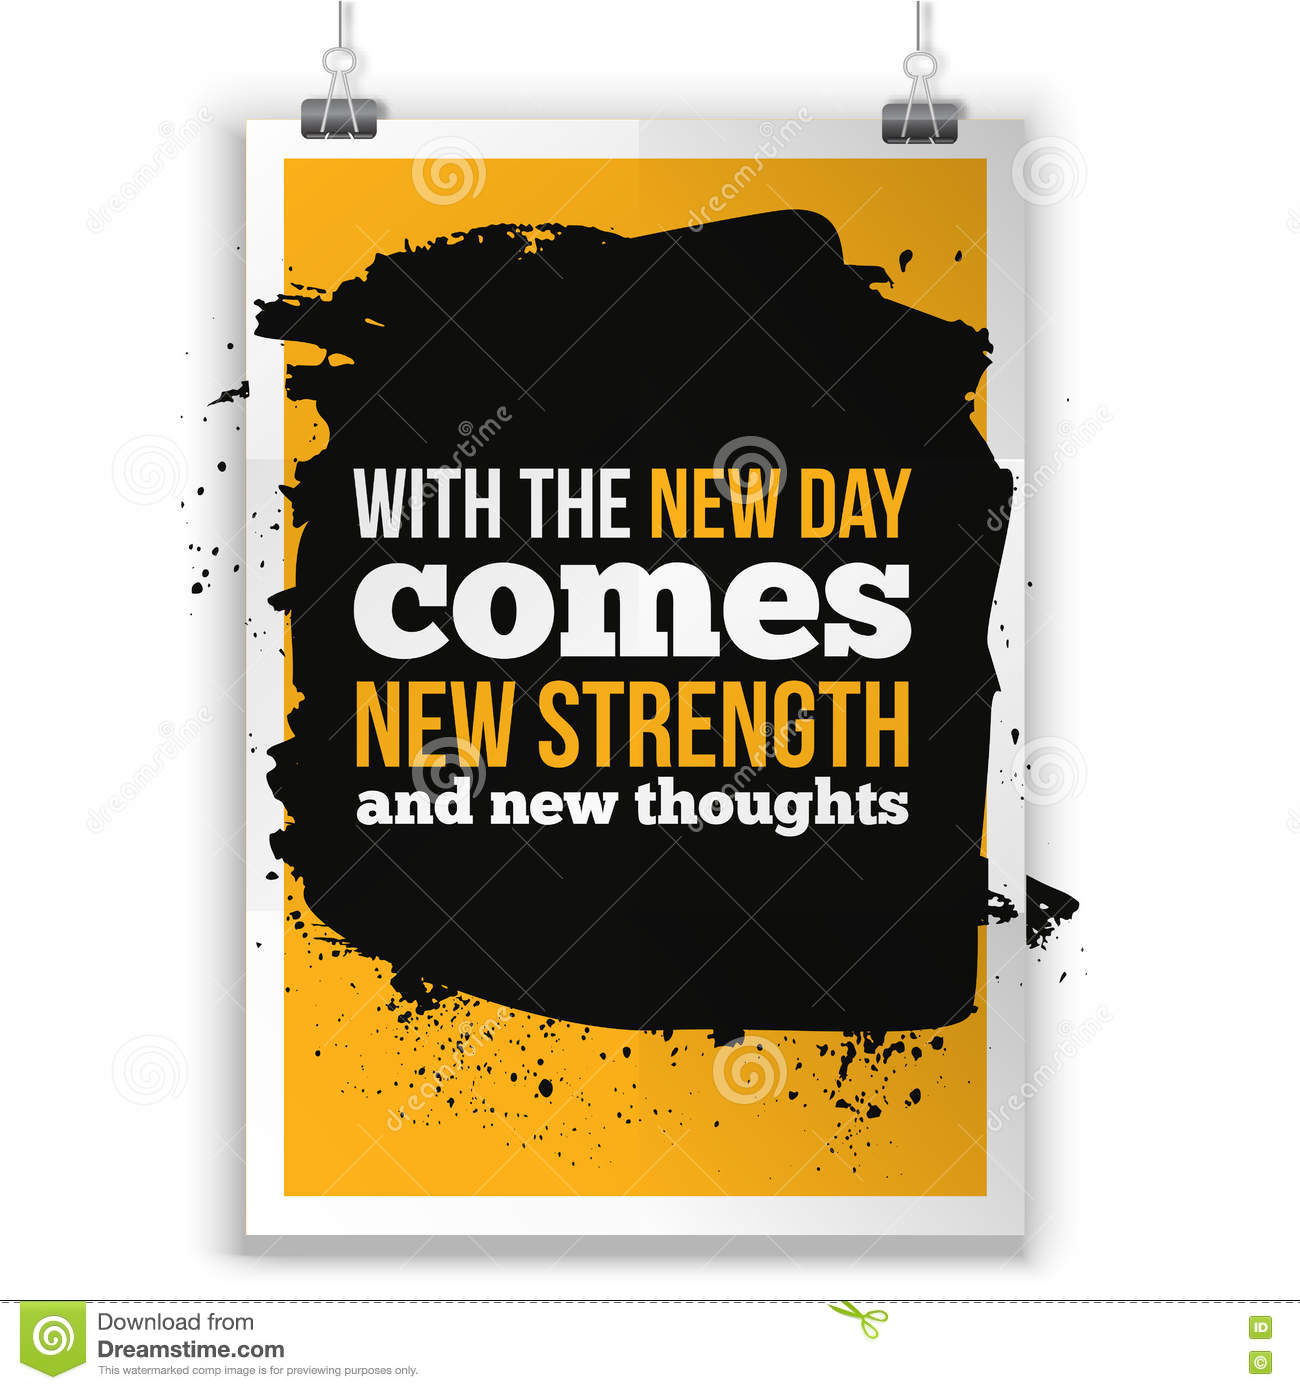 With The New Day Comes New Strength Inspirational Quote About Life